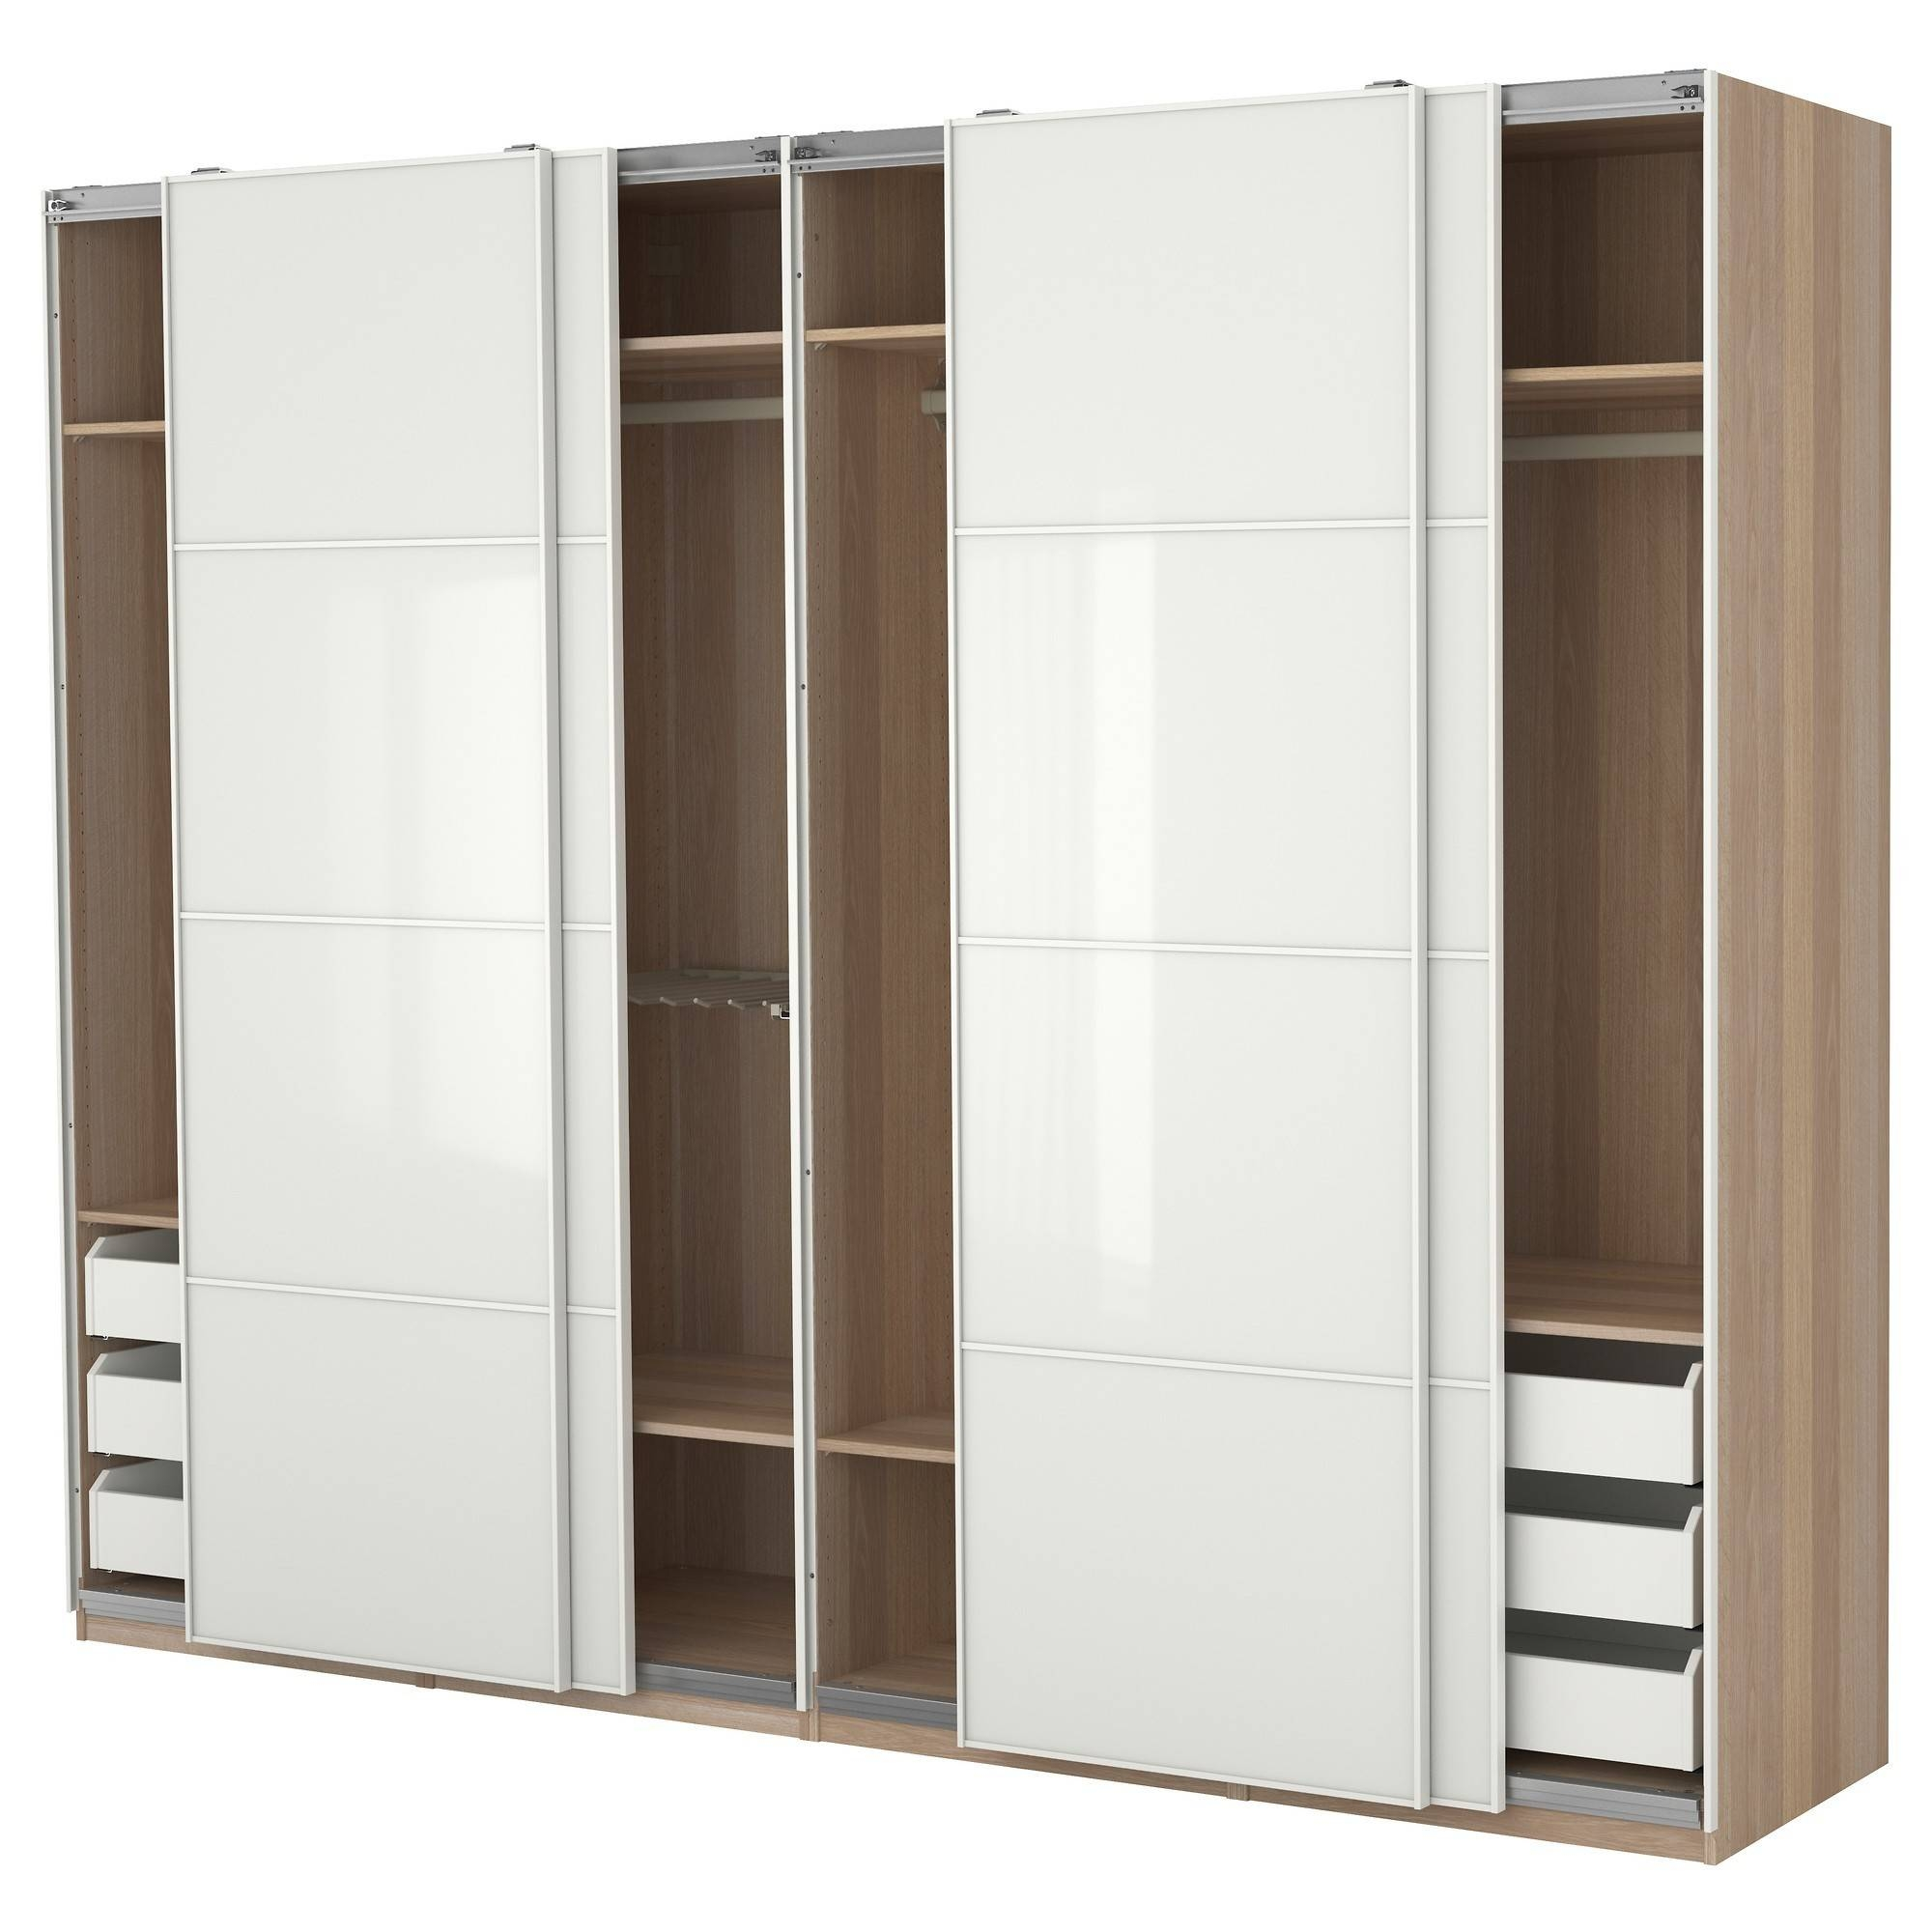 Furniture: Fancy Wardrobe Armoire For Wardrobe Organizer Idea in Wardrobe With Drawers and Shelves (Image 14 of 30)